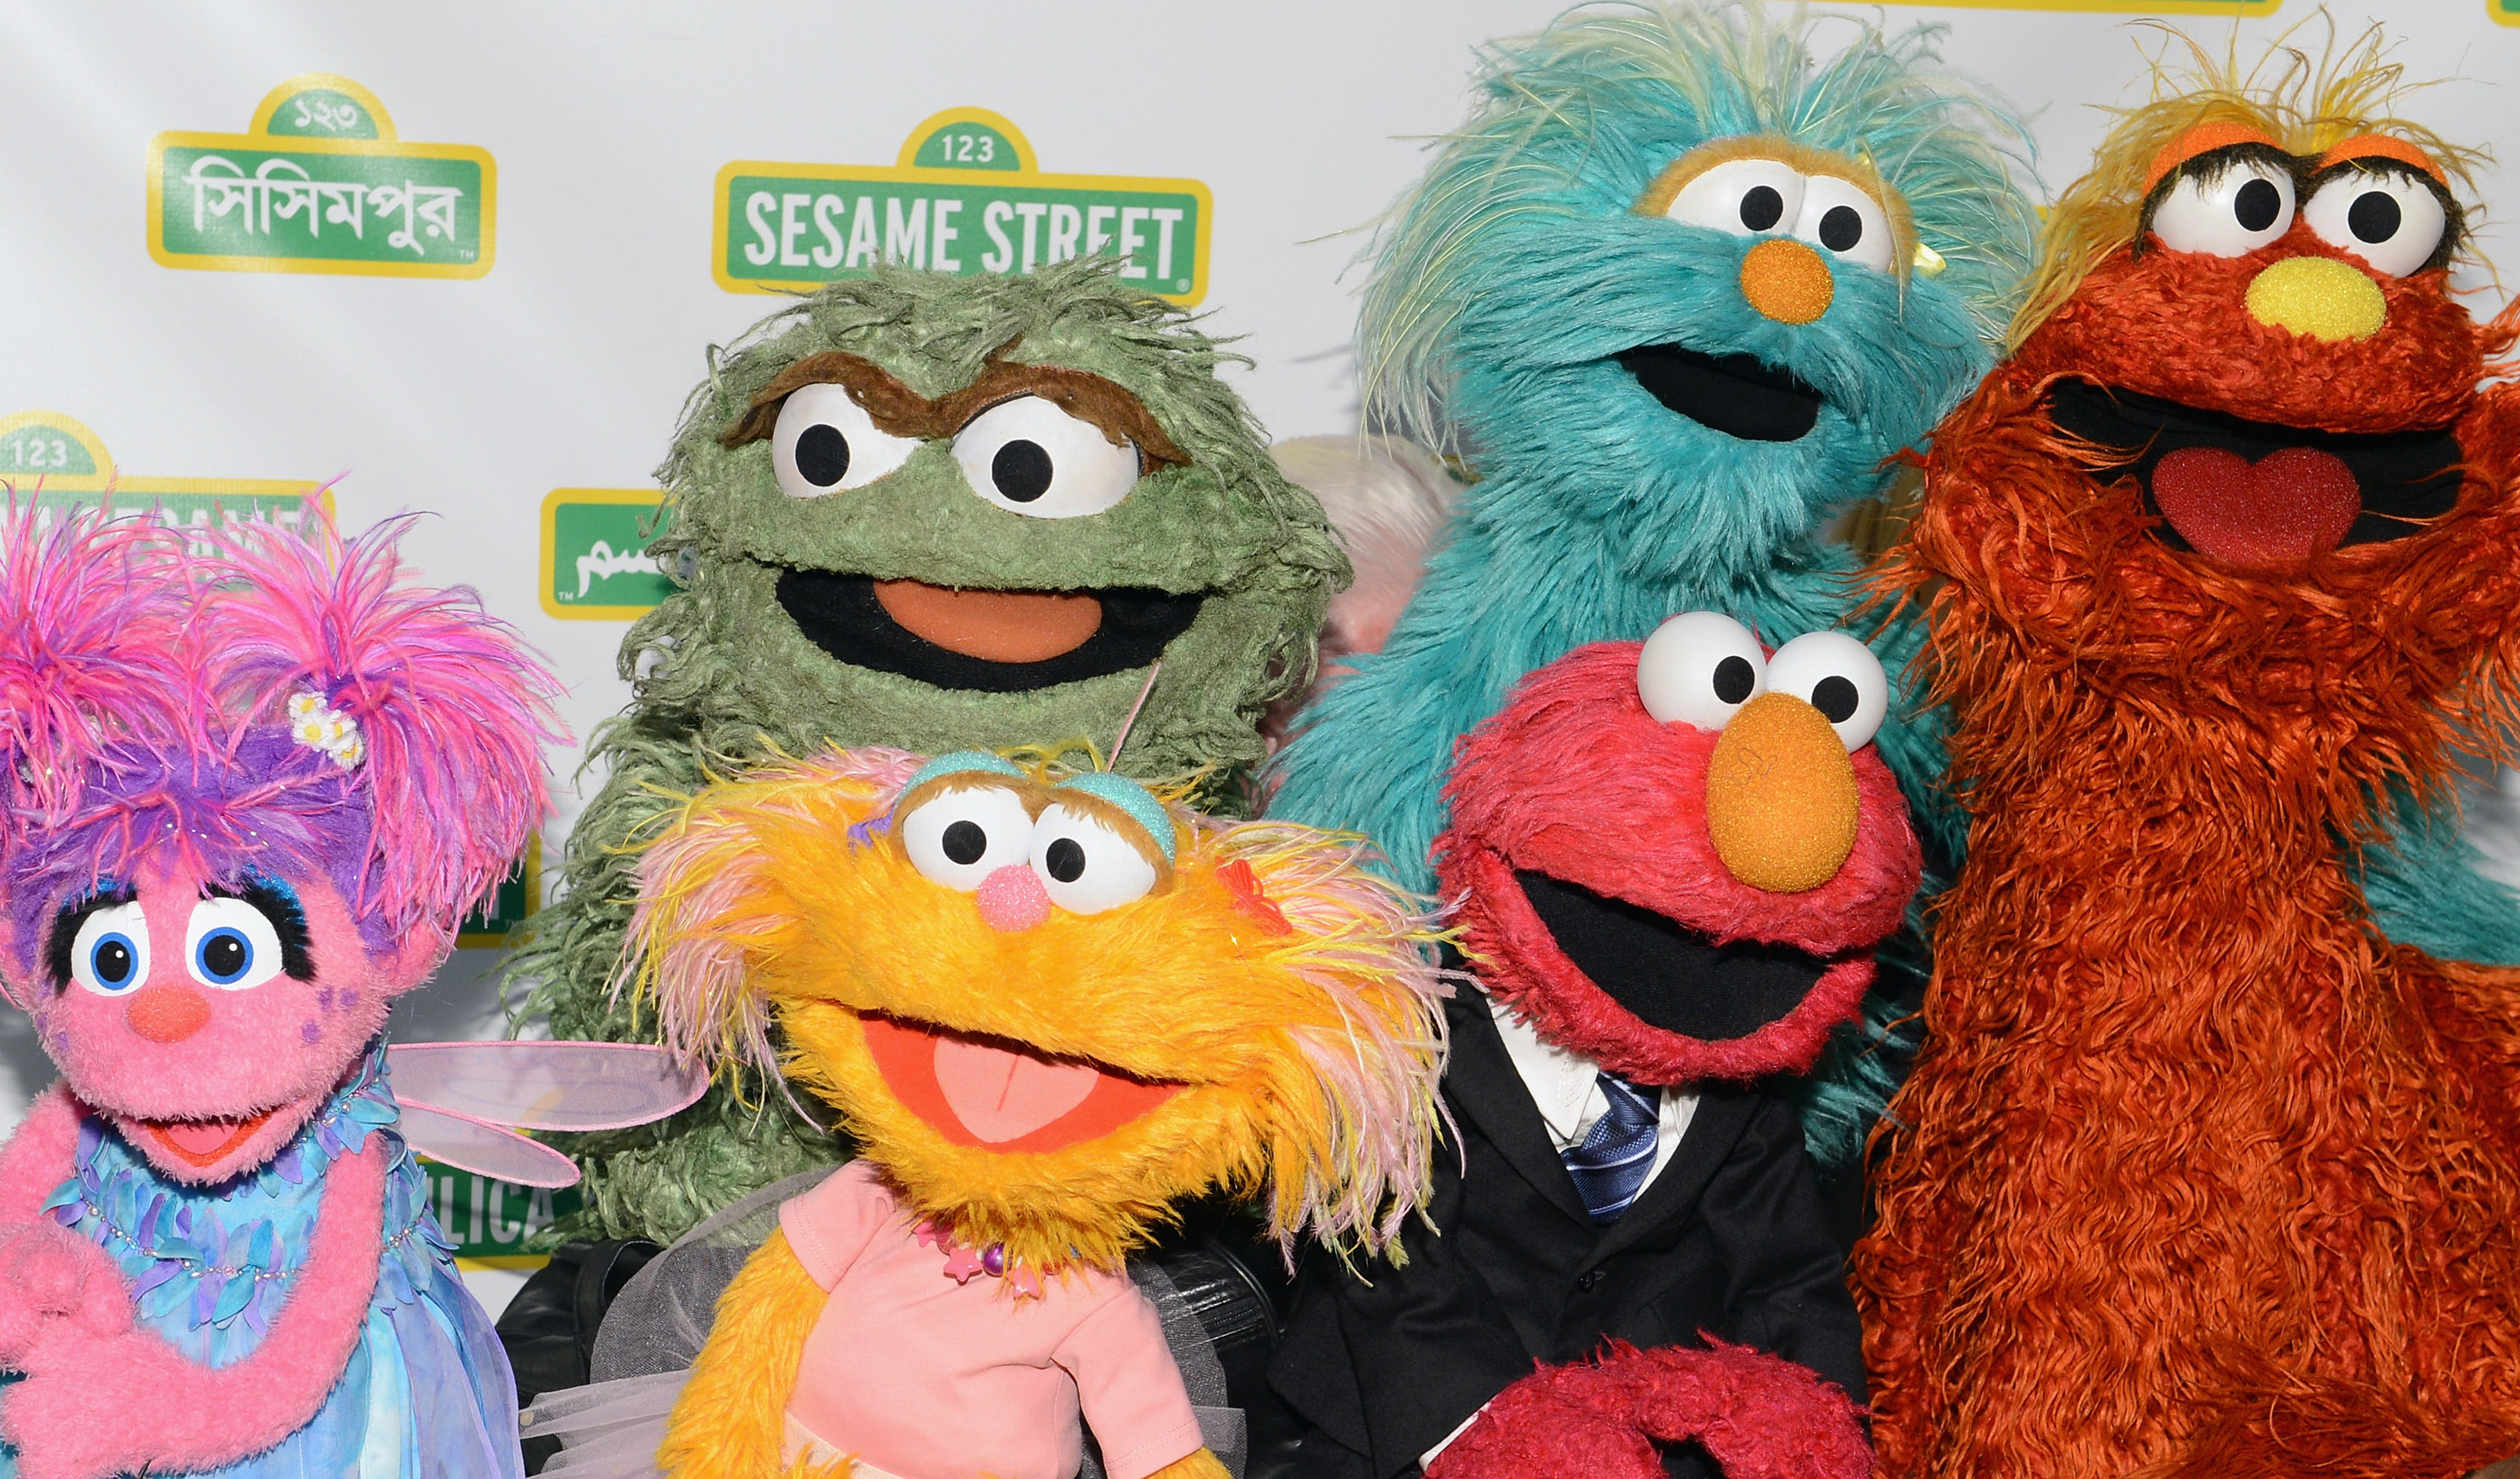 NEW YORK, NY - MAY 30:  Muppets attend the Sesame Street Workshop 10th Annual Benefit Gala at Cipriani 42nd Street on May 30, 2012 in New York City.  (Photo by Andrew H. Walker/Getty Images)